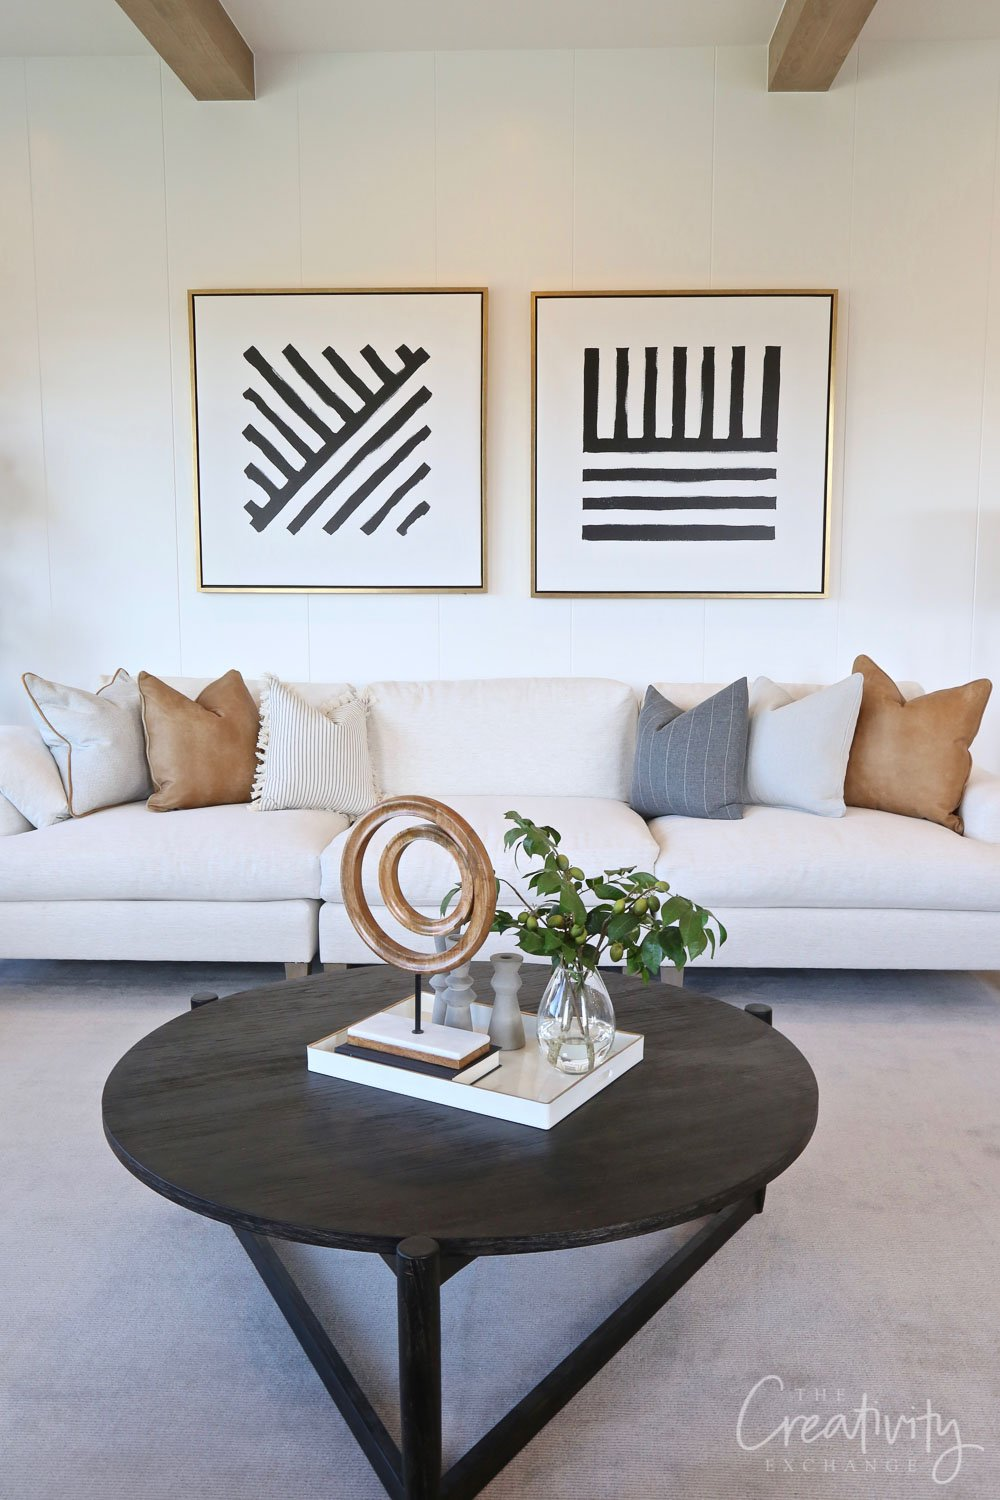 Sofa with pillows and accent art